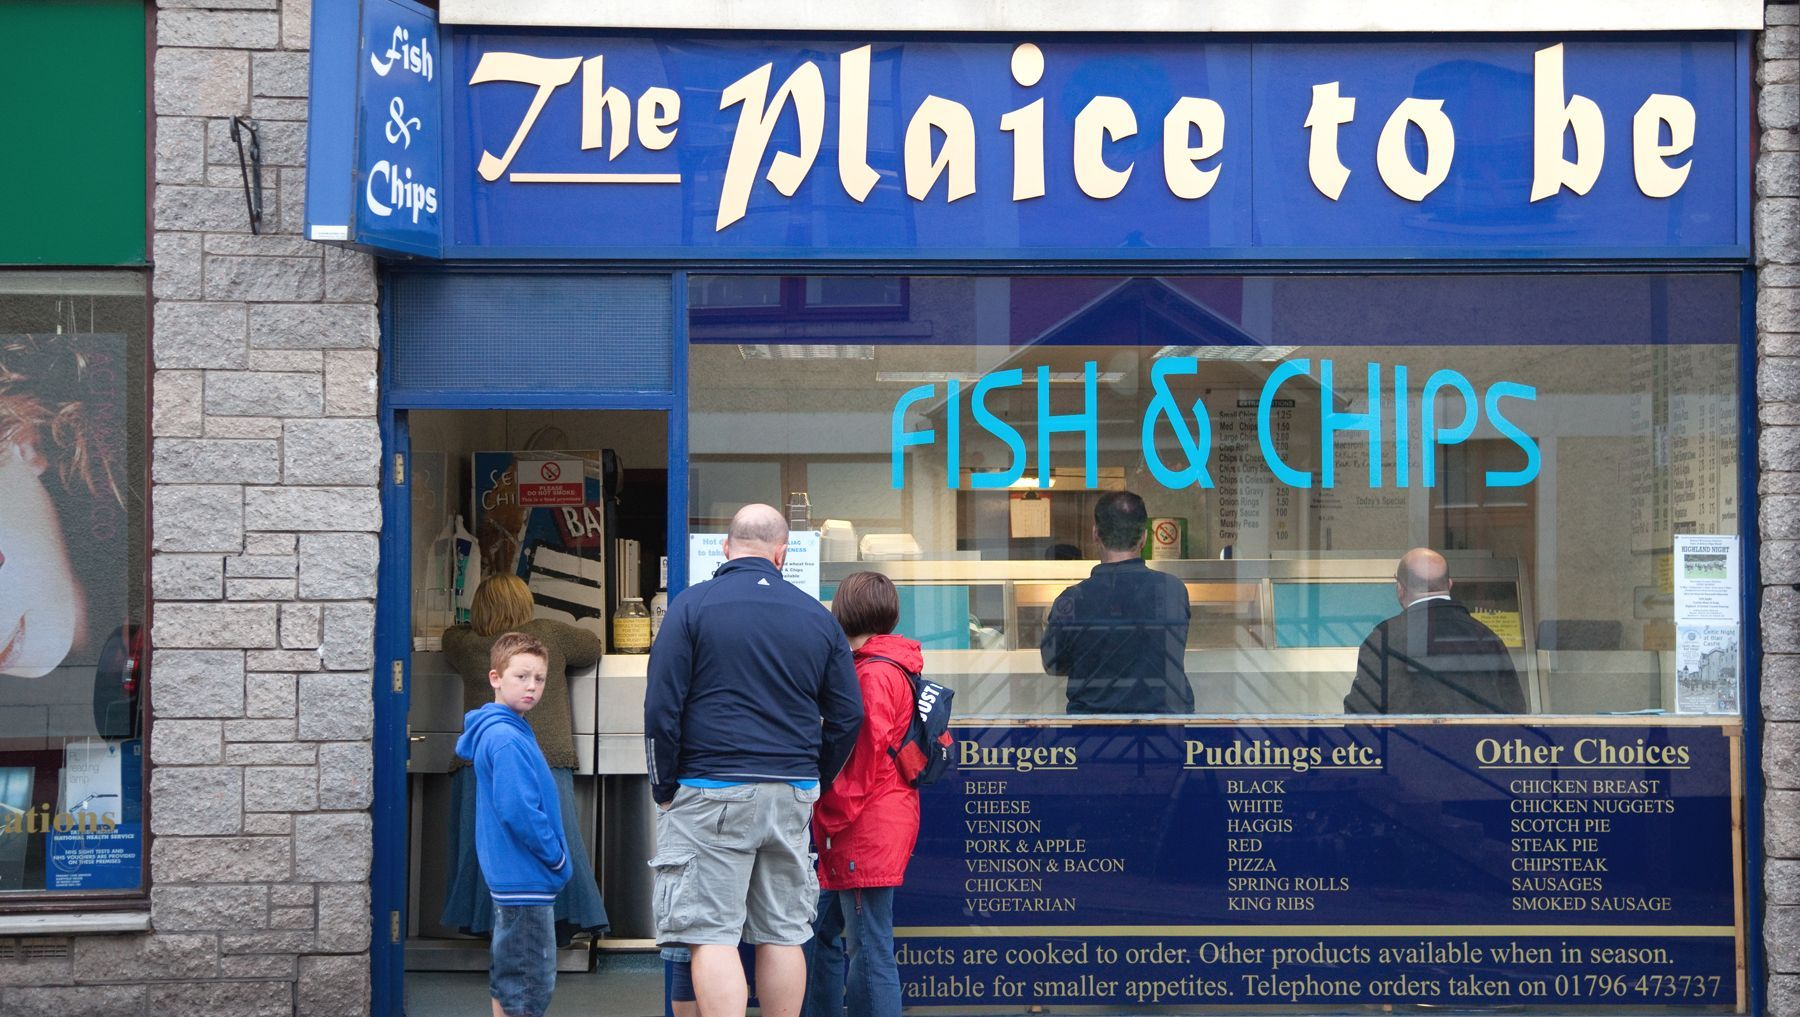 Rick Steves: Eating on the cheap in expensive Europe  Call us at 403-255-6707 and we can get you to London for those fish and chips you crave!